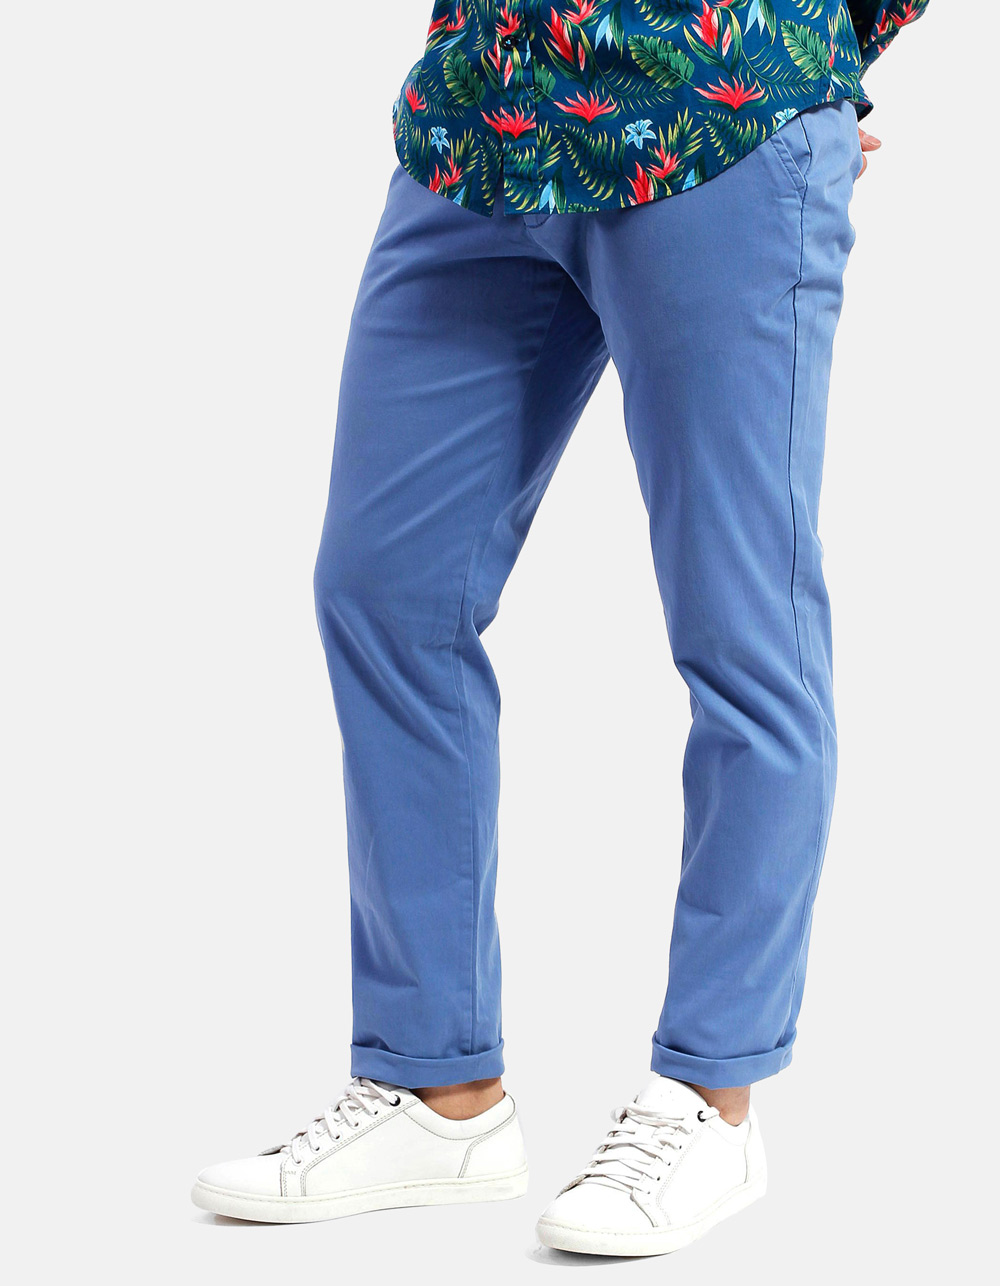 Blue chinos trousers